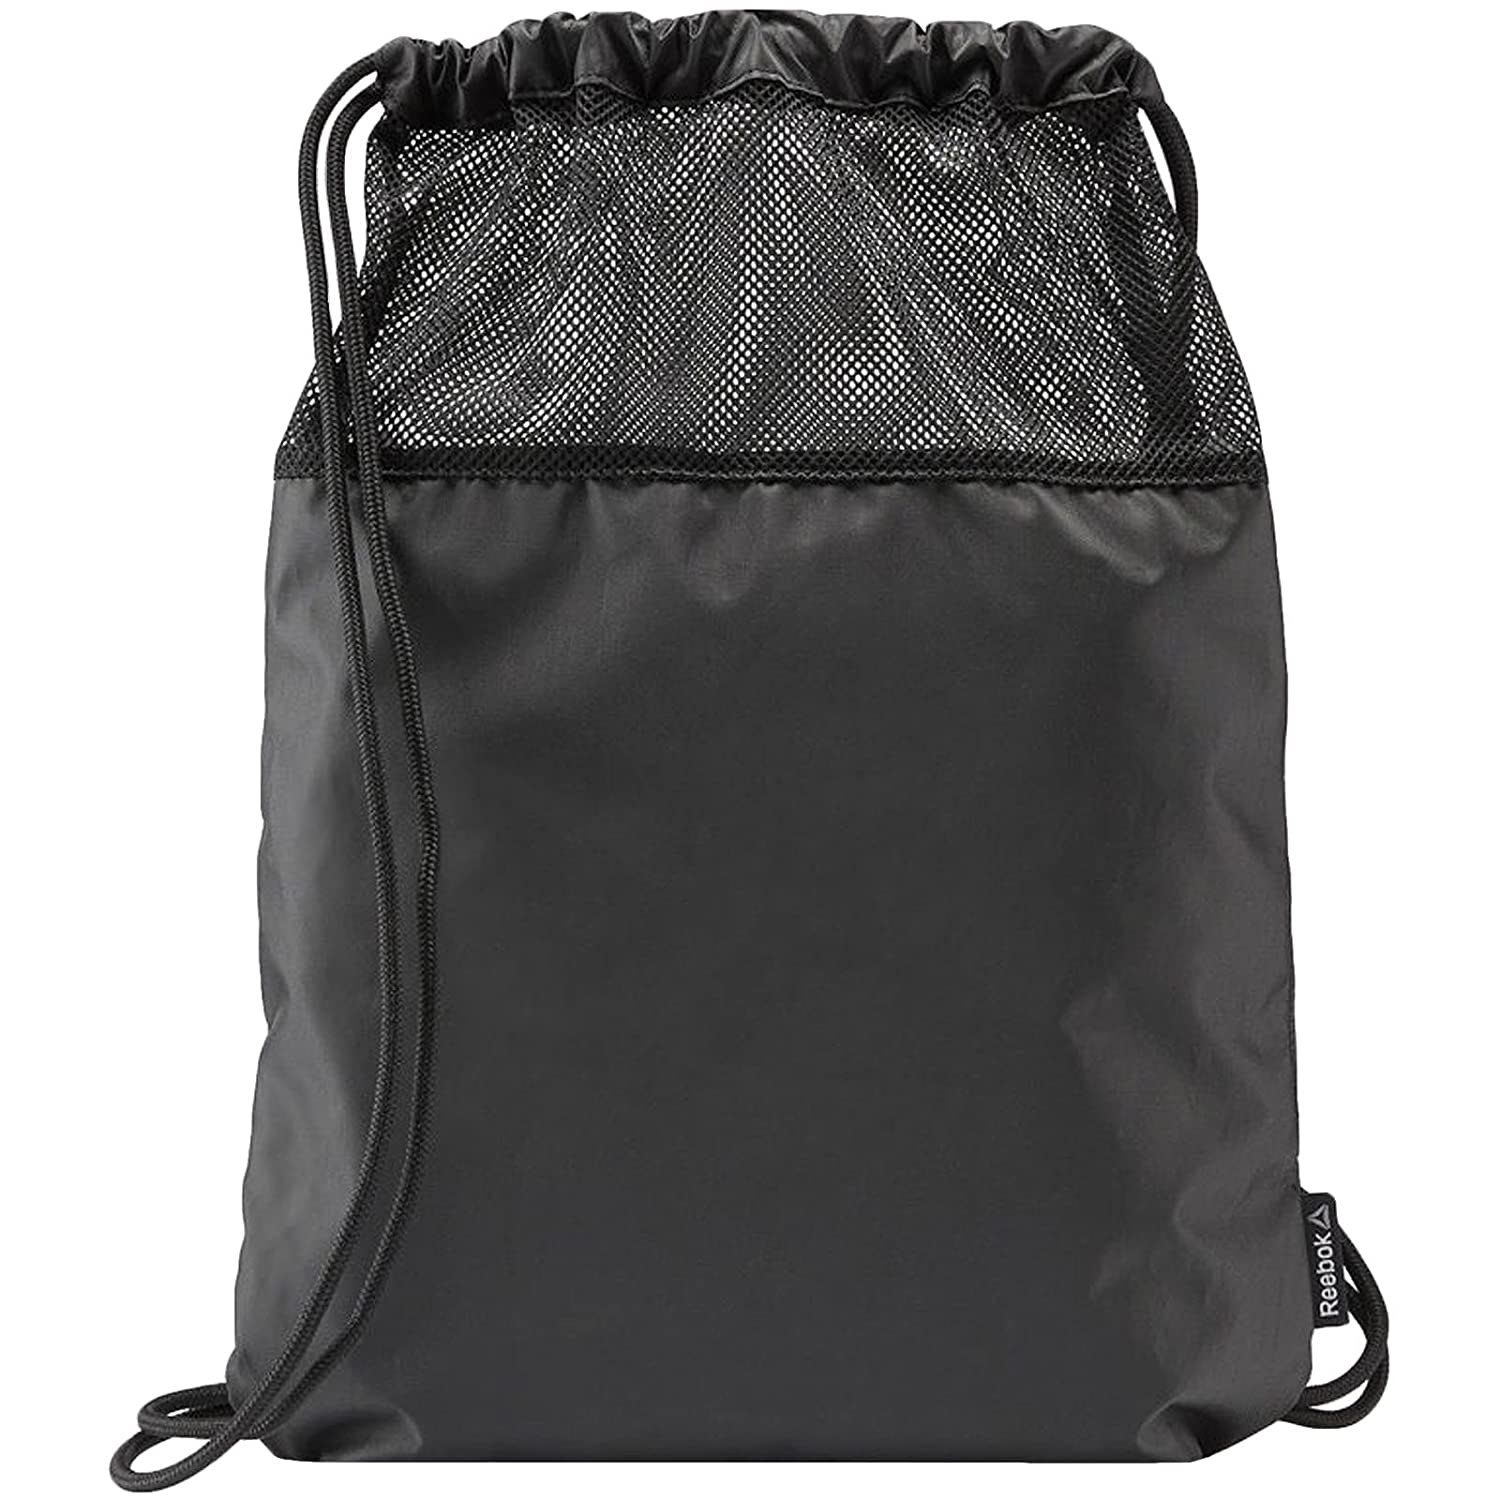 5b75e7d456 Reebok Studio Les Mills Gym Sack Drawstring Bag Black: Amazon.co.uk ...